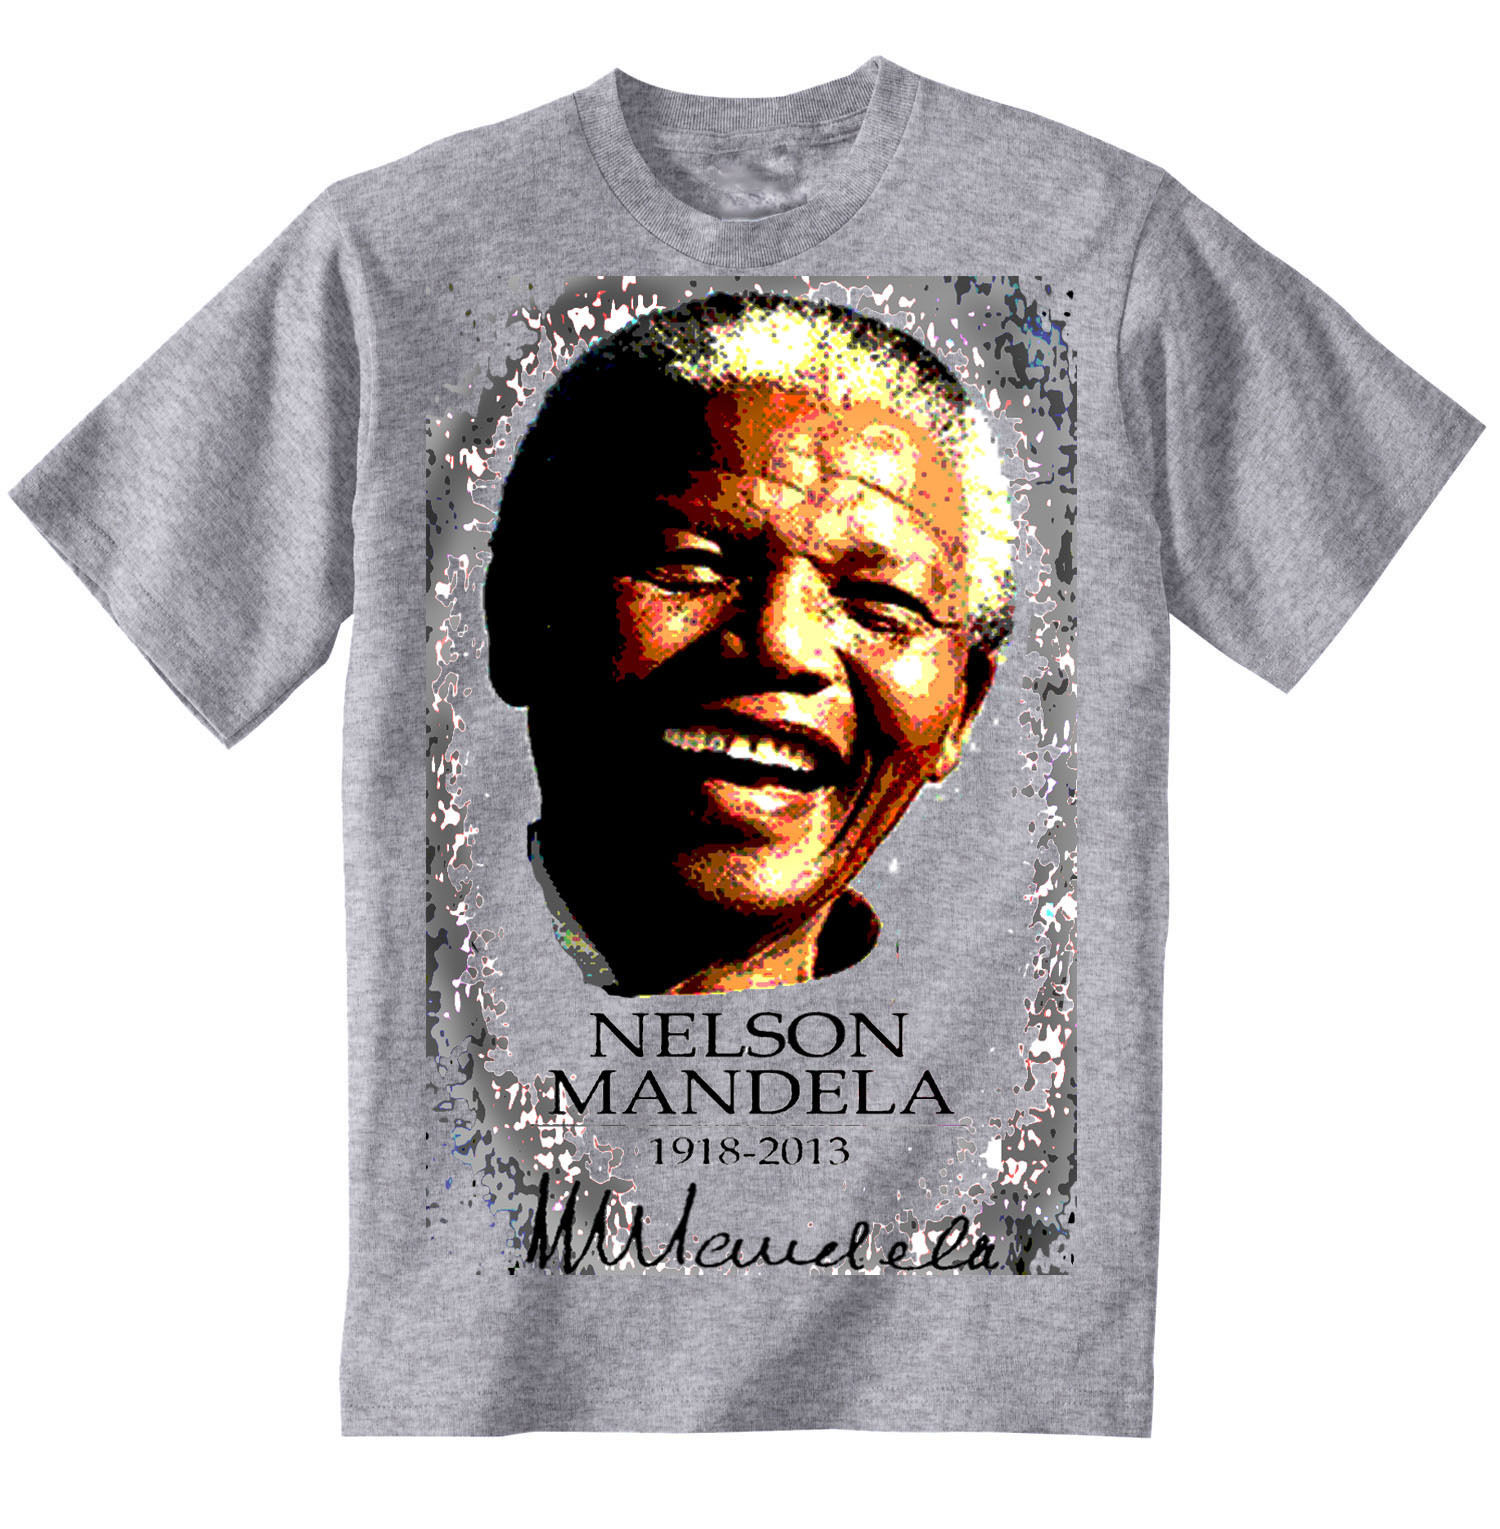 NELSON MANDELA 1918-2013  - NEW GRAPHIC GREY TSHIRT- S-M-L-XL-XXL